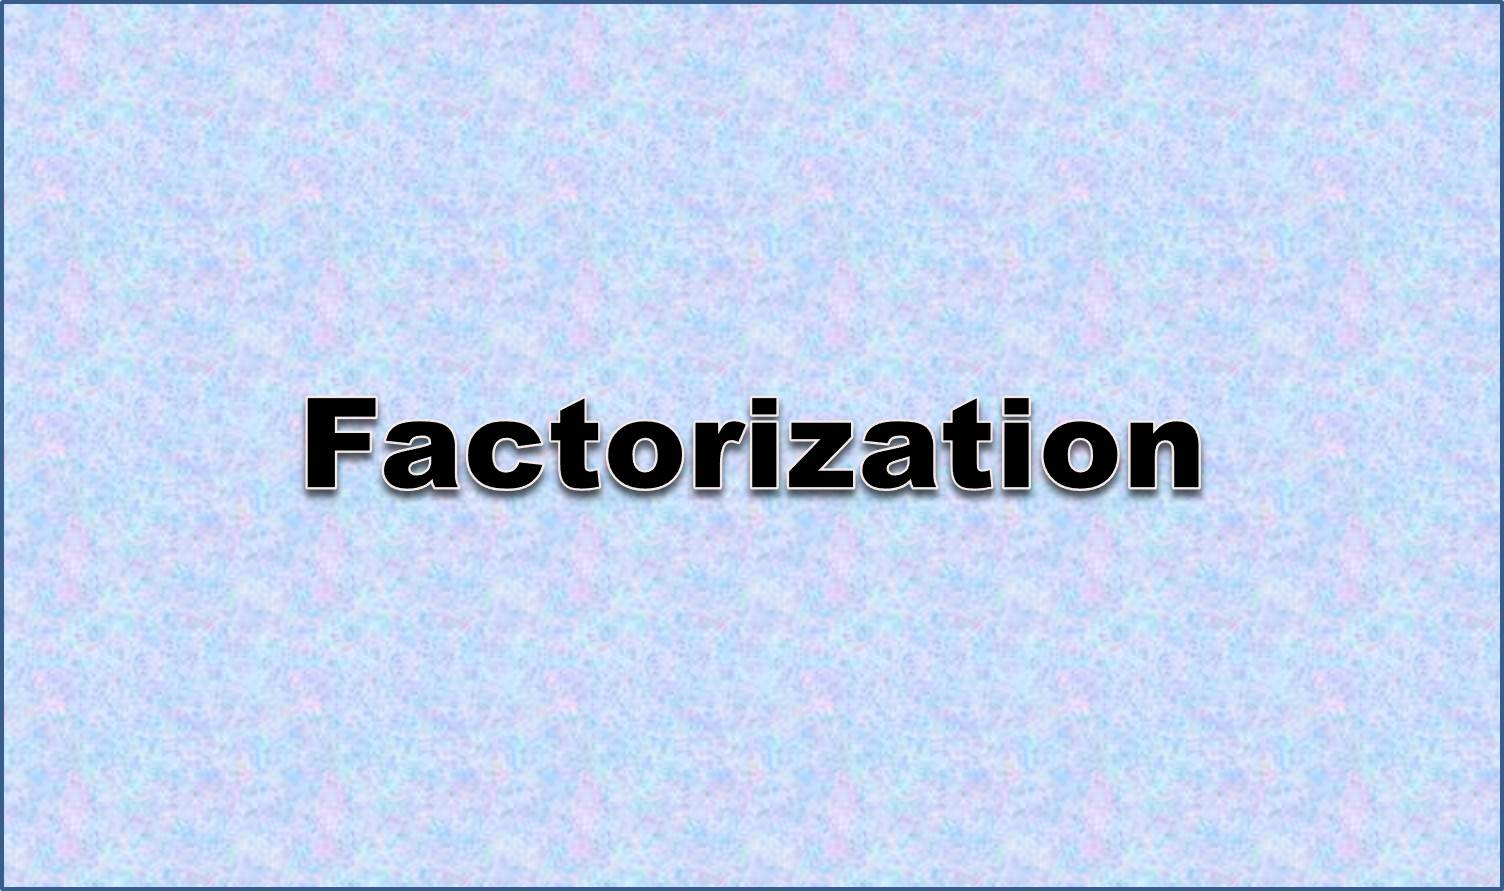 http://study.aisectonline.com/images/Factoring difference of squares-analyzing factorization.jpg